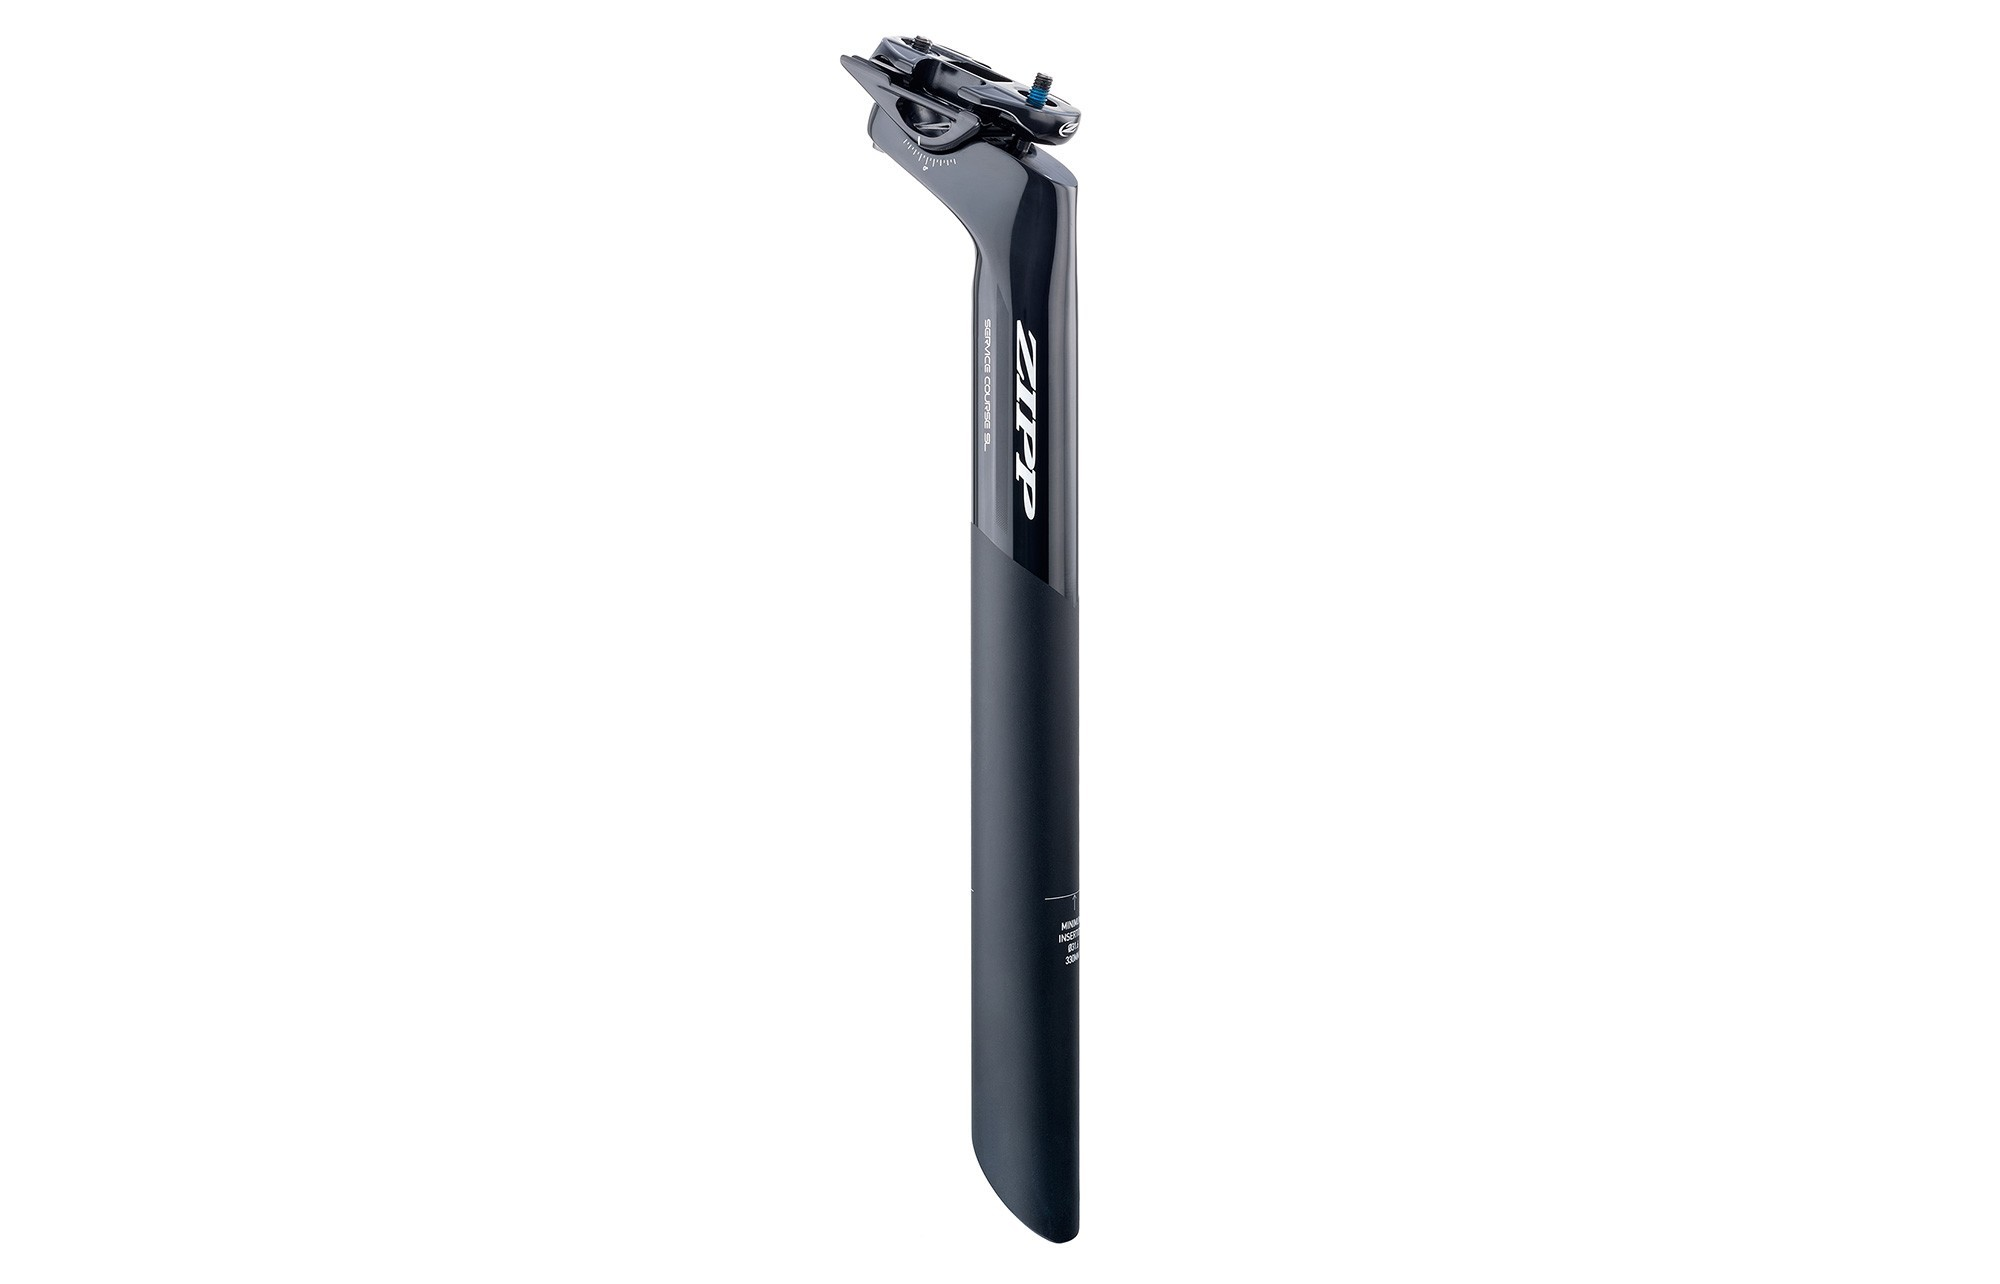 Zipp Service Course Aluminum Road Bike Seatpost 31.6 x 330 mm 0 Setback NEW